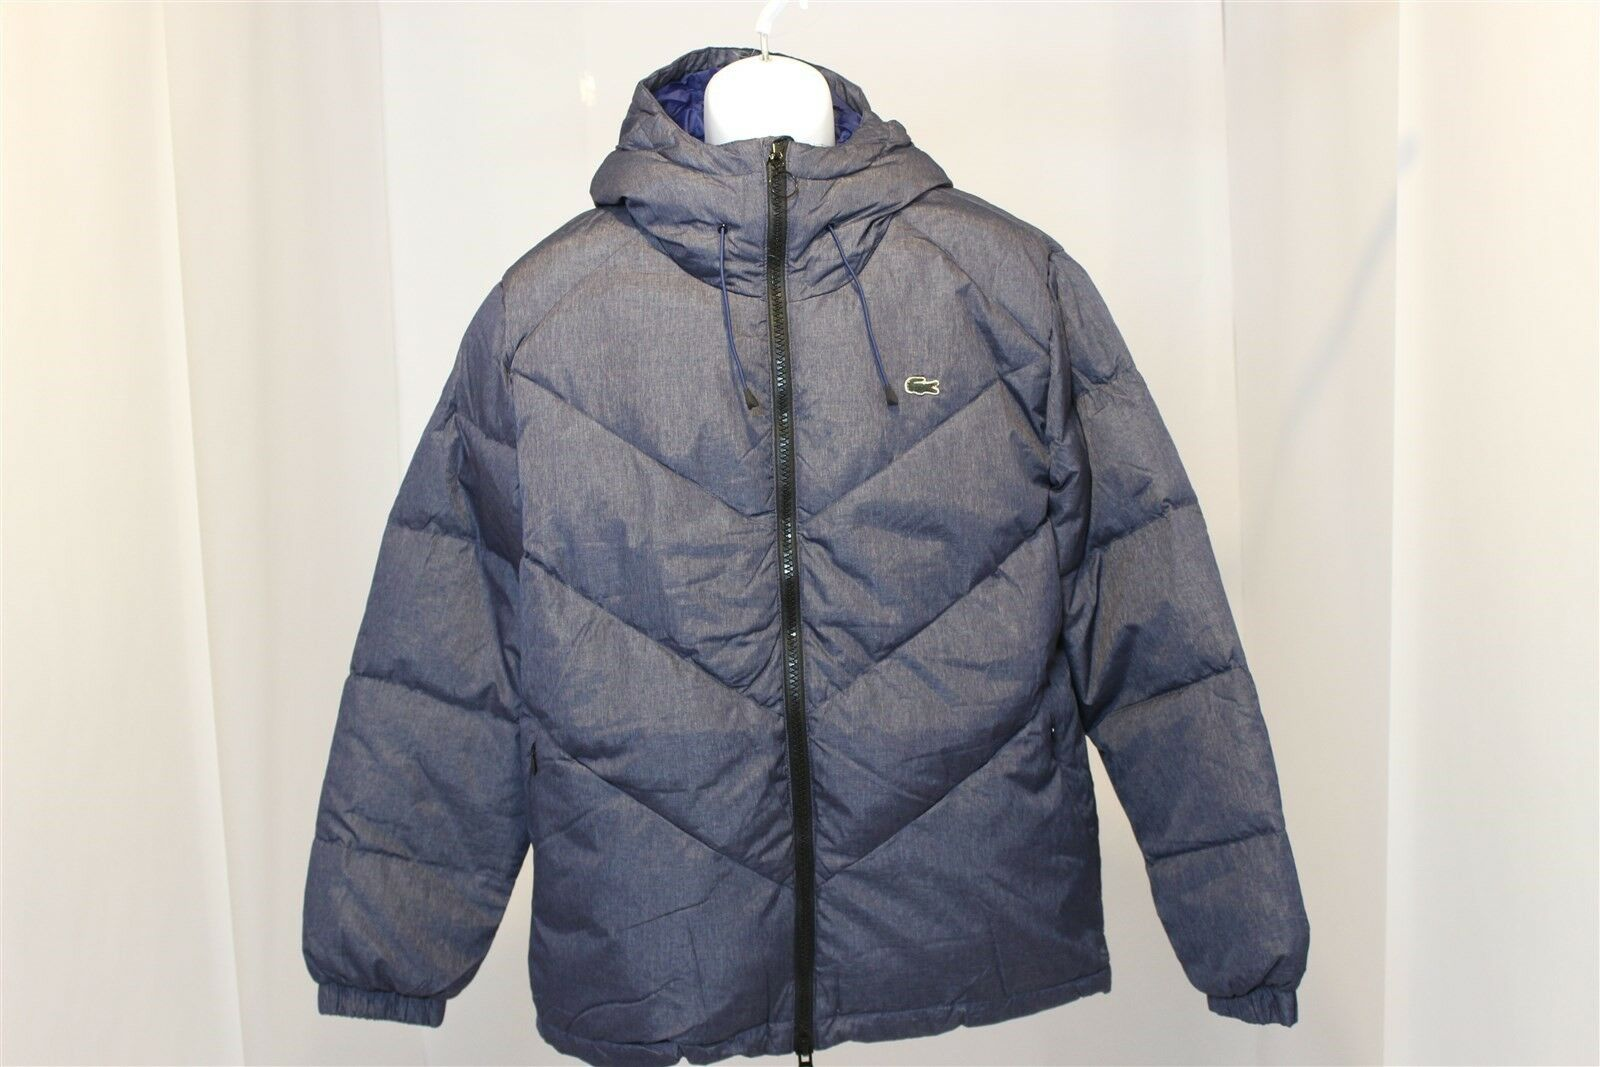 LACOSTE LIVE MENS DOWN-PADDED PUFFER COAT - NAVY blueE - Men's Size (M-L)